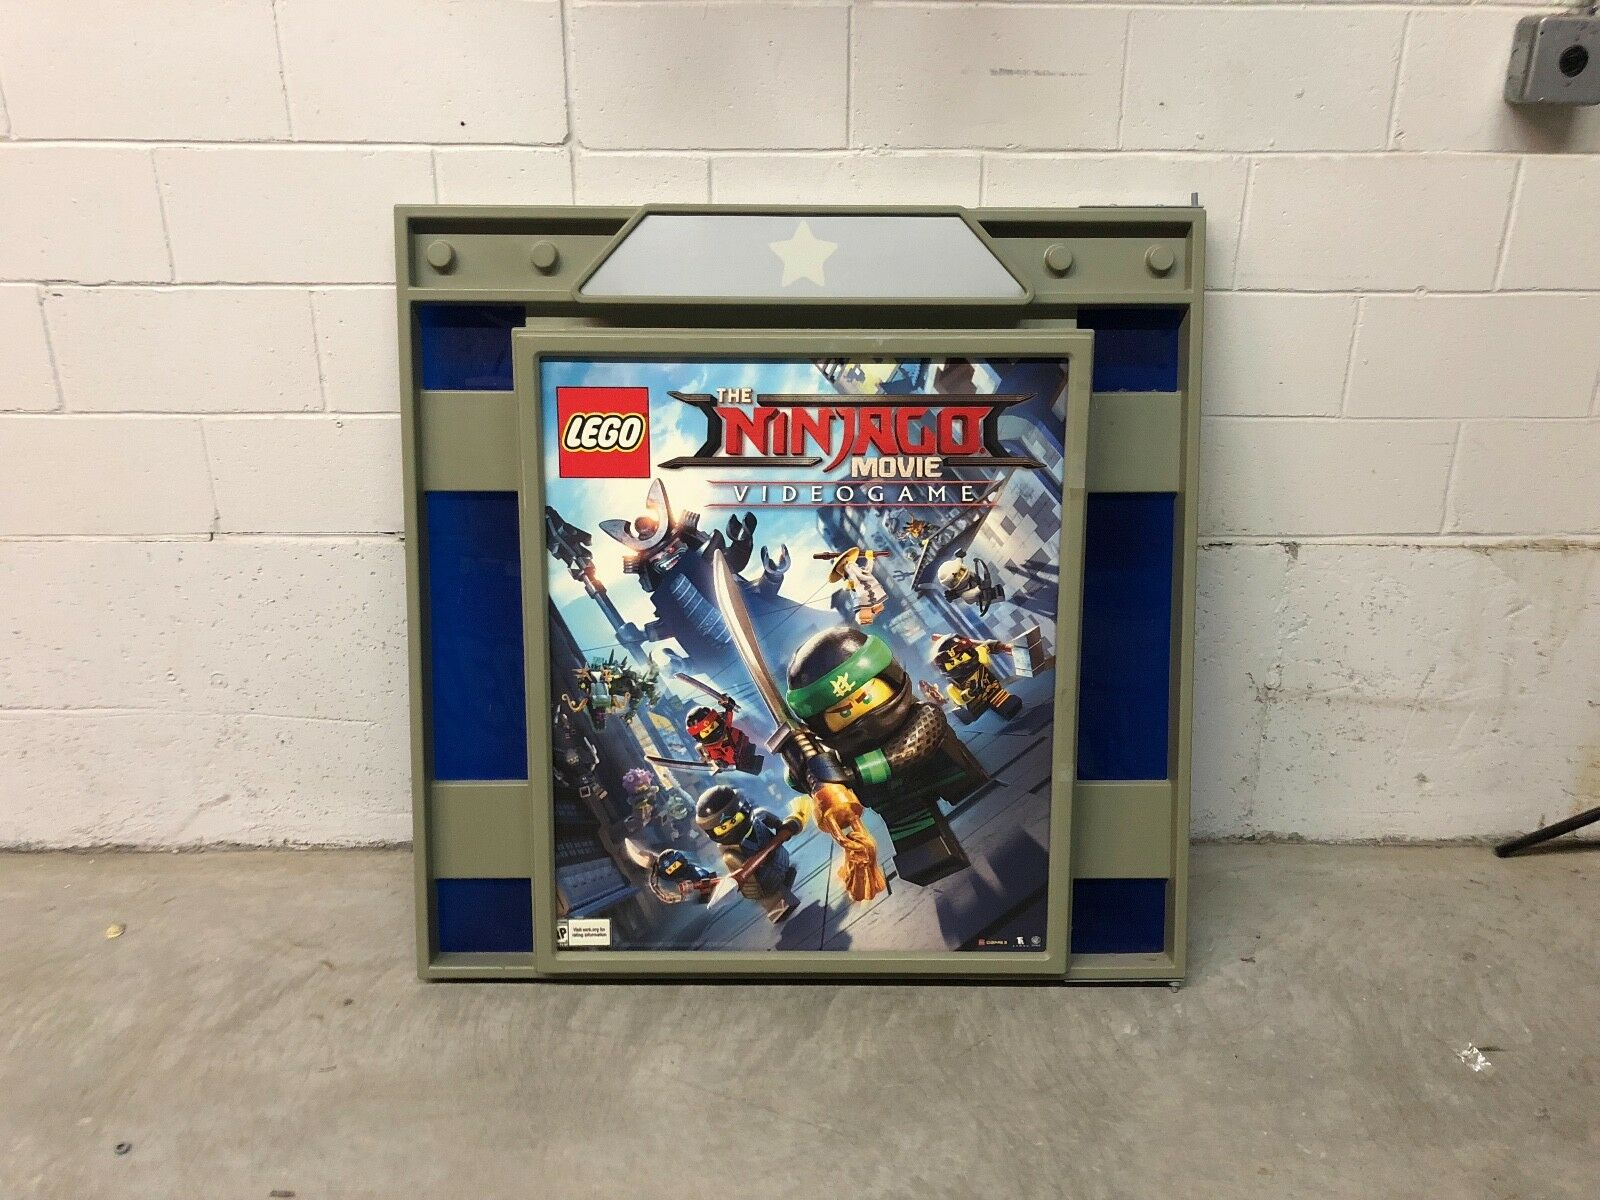 Toys R Us R Zone Video Game Sign Holder Nintendo Lego Video Games